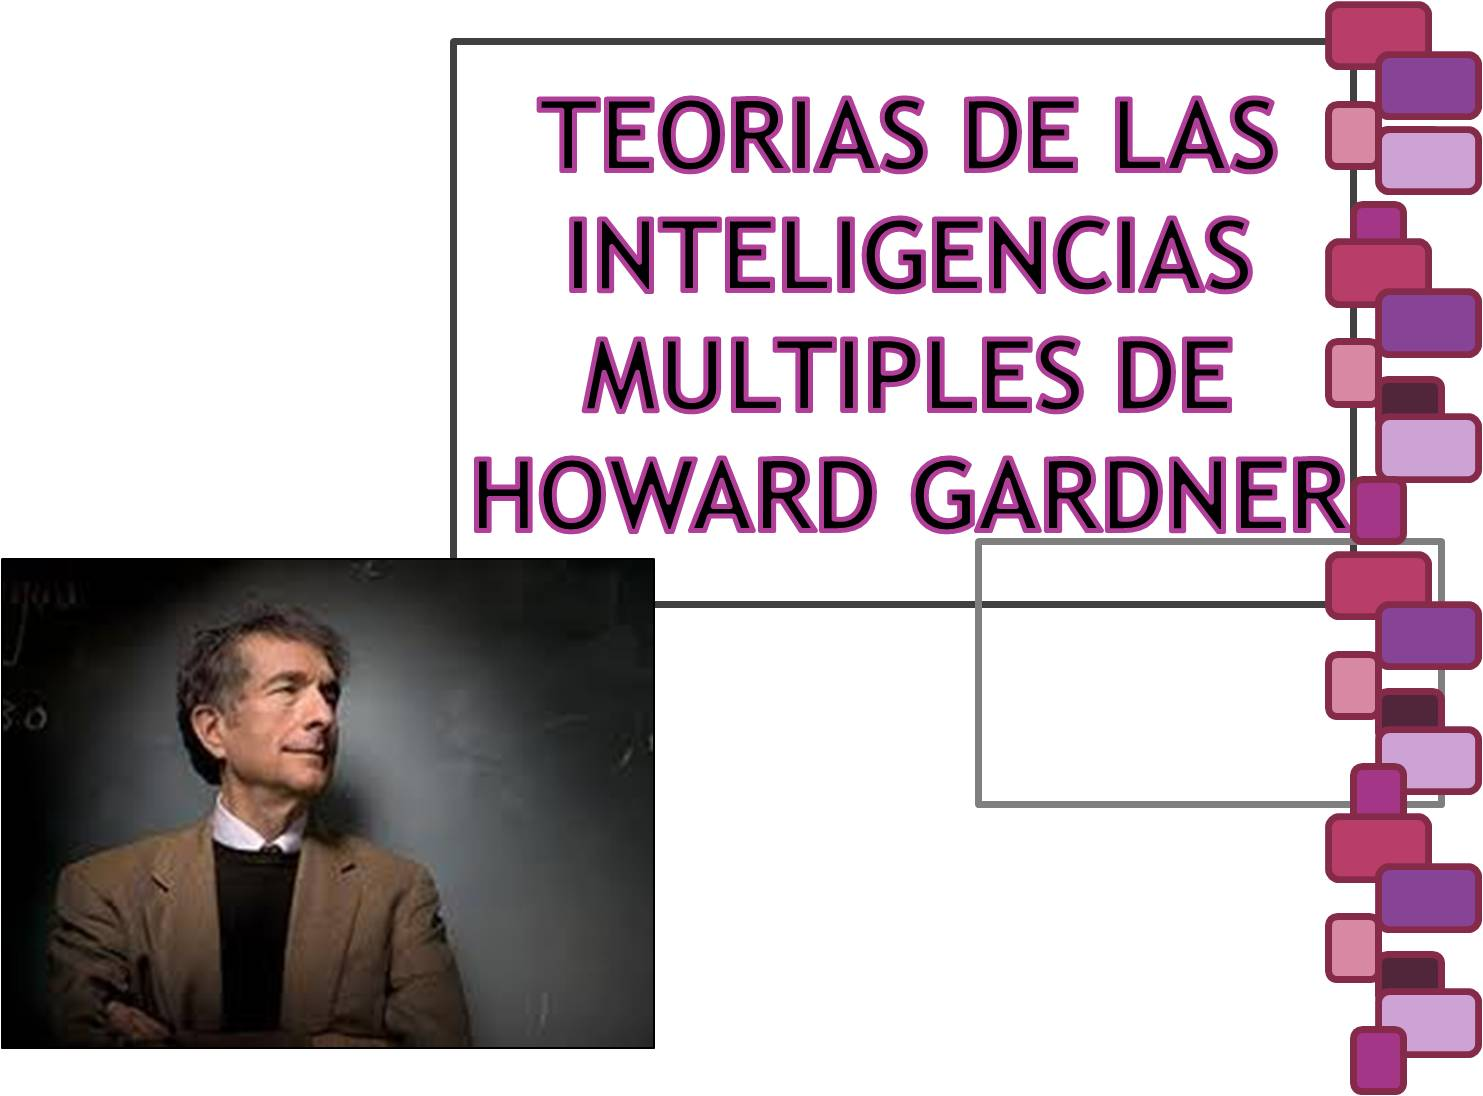 Teoria de howard gardner yahoo dating. 10 men you should avoid dating.